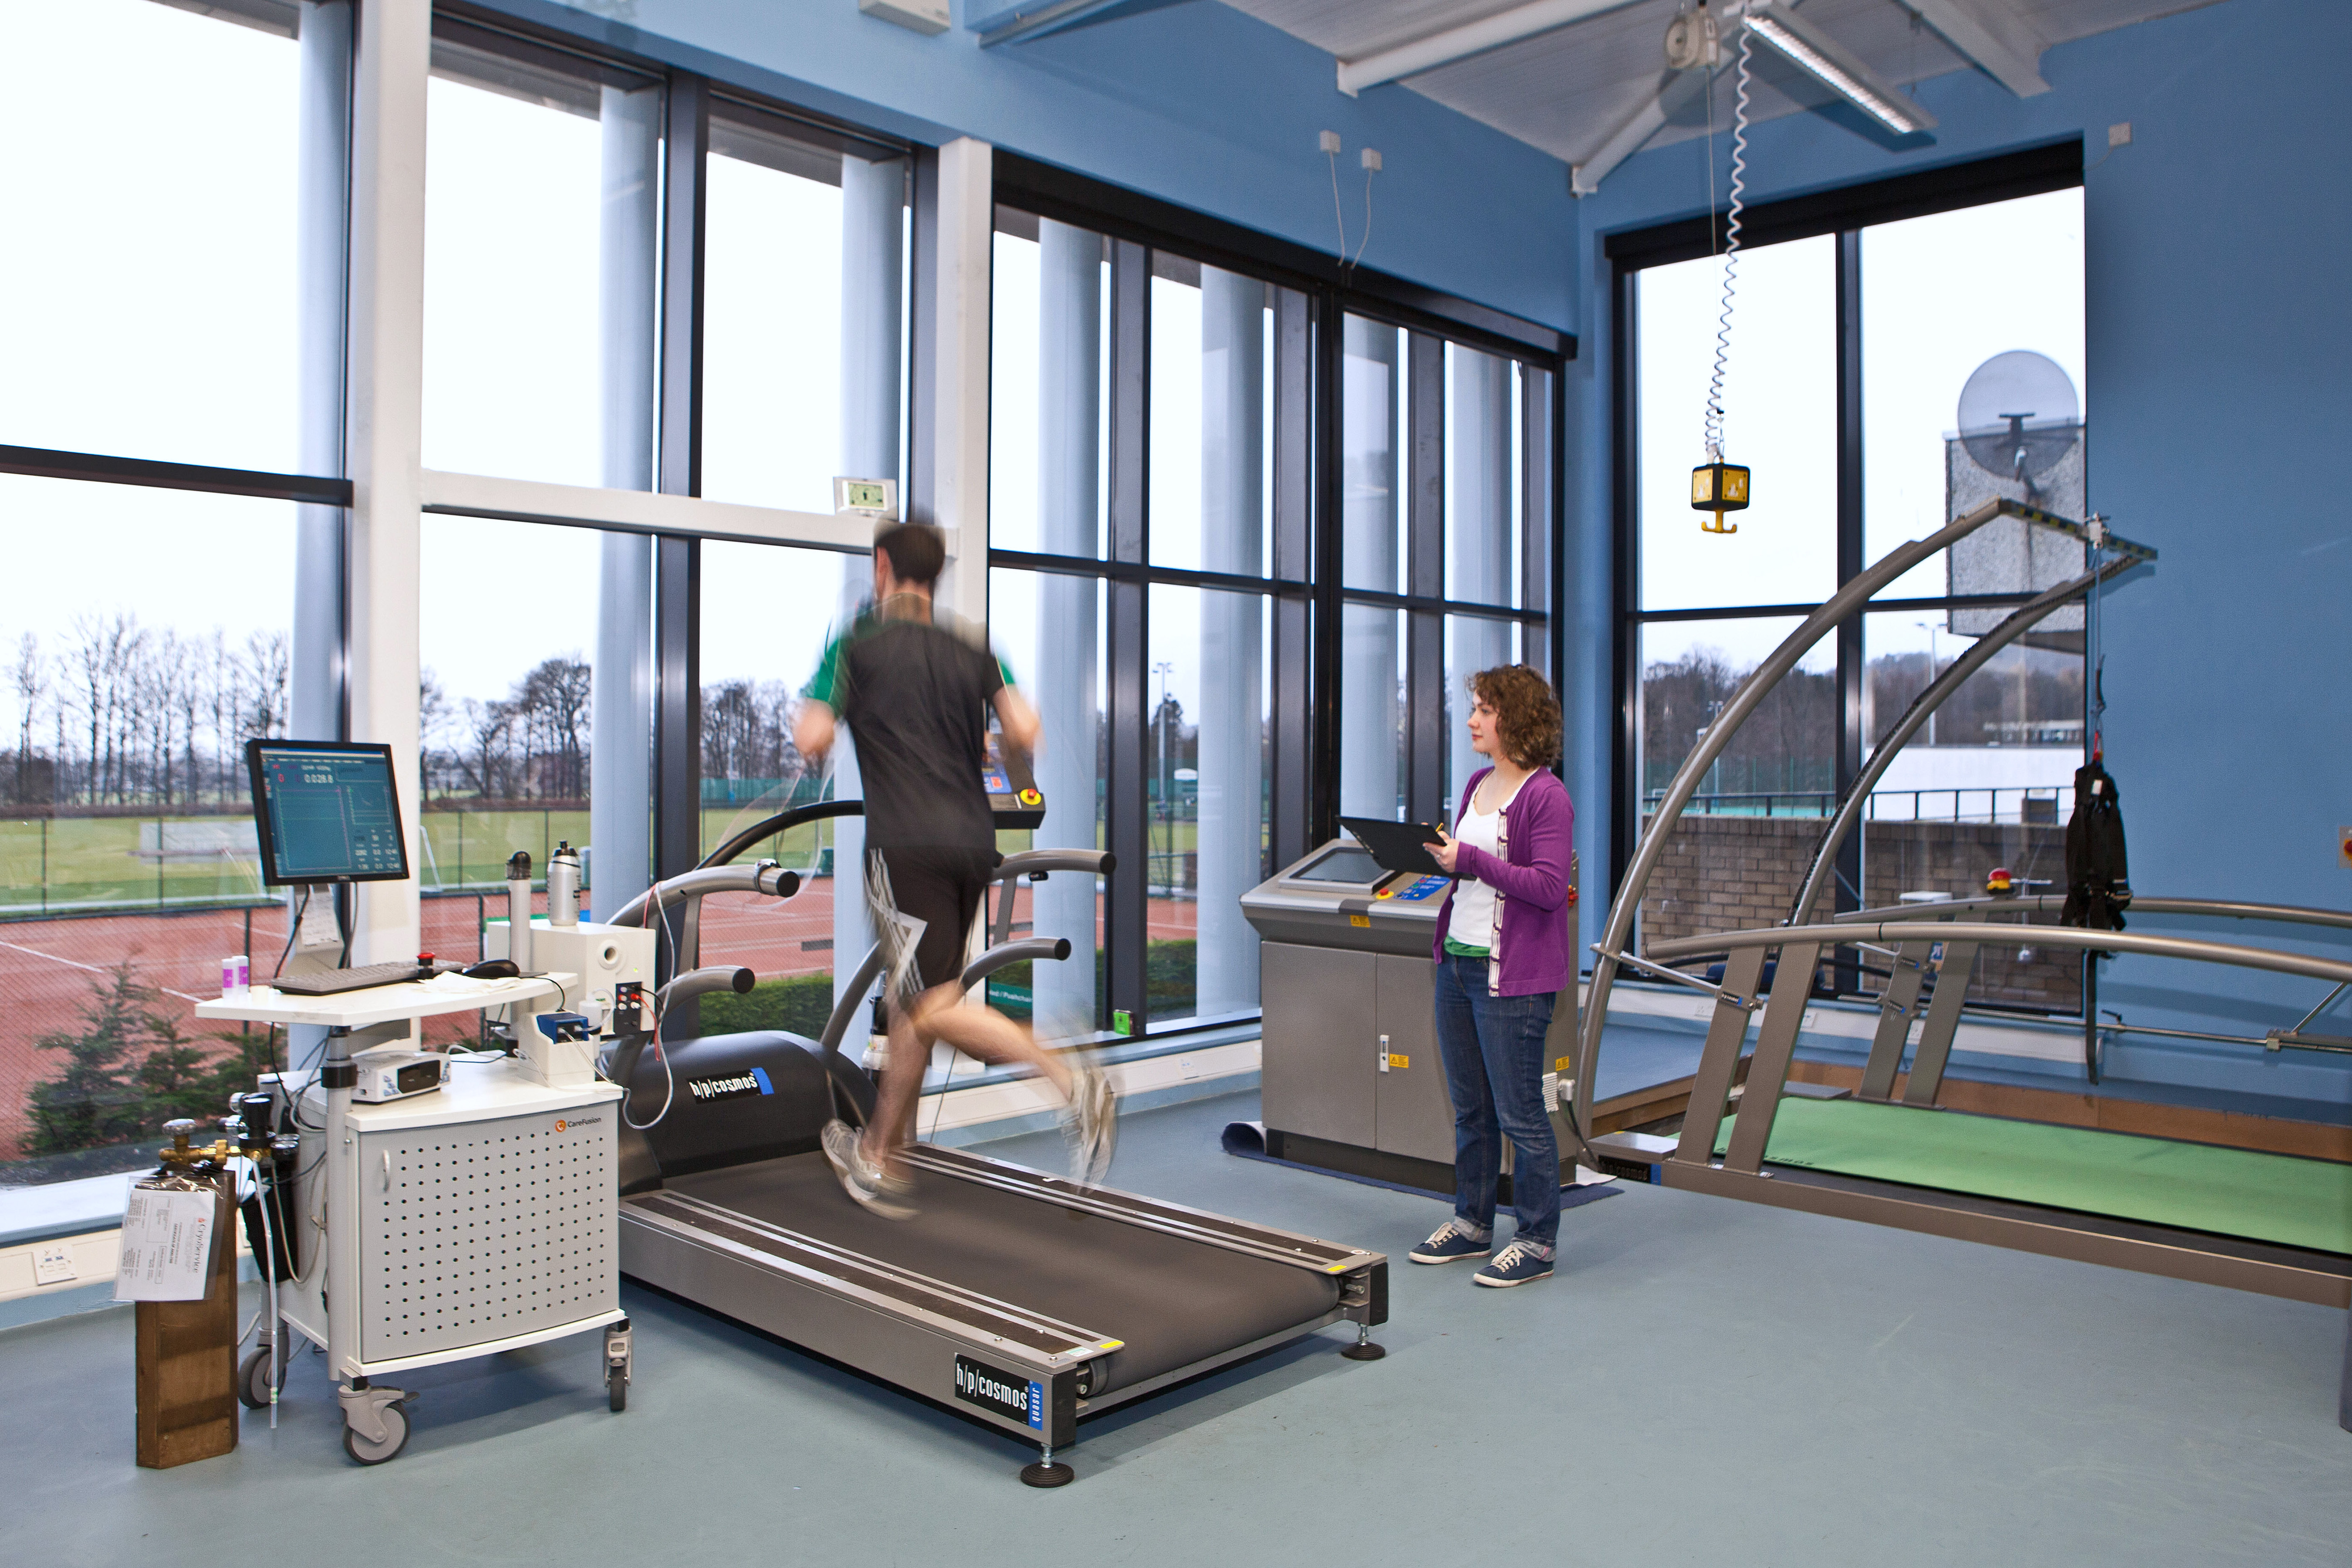 Students working in the Faculty of Health Sciences and Sport at University of Stirling